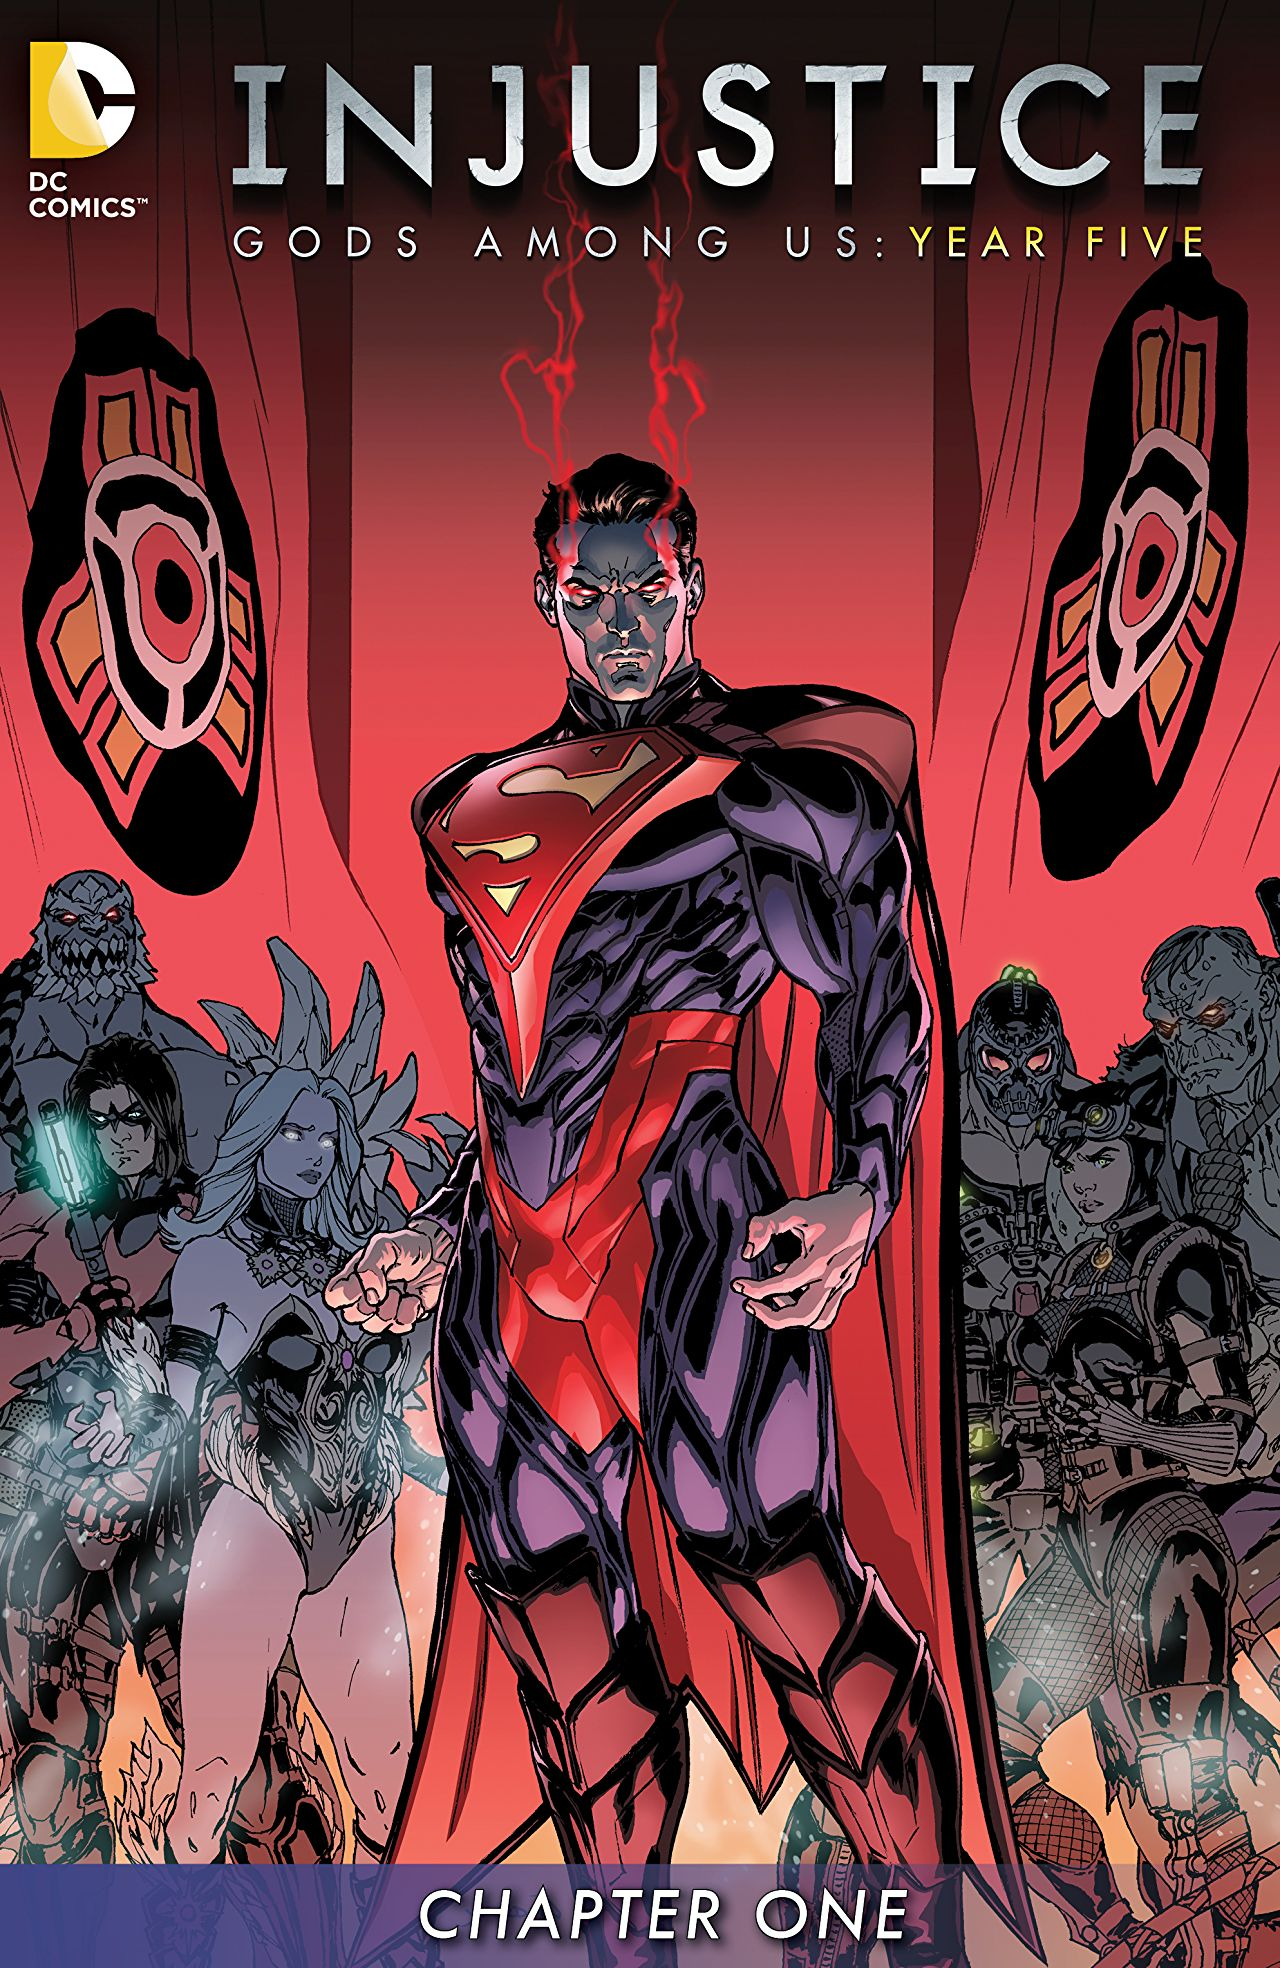 Injustice: Gods Among Us: Year Five Vol 1 1 (Digital)